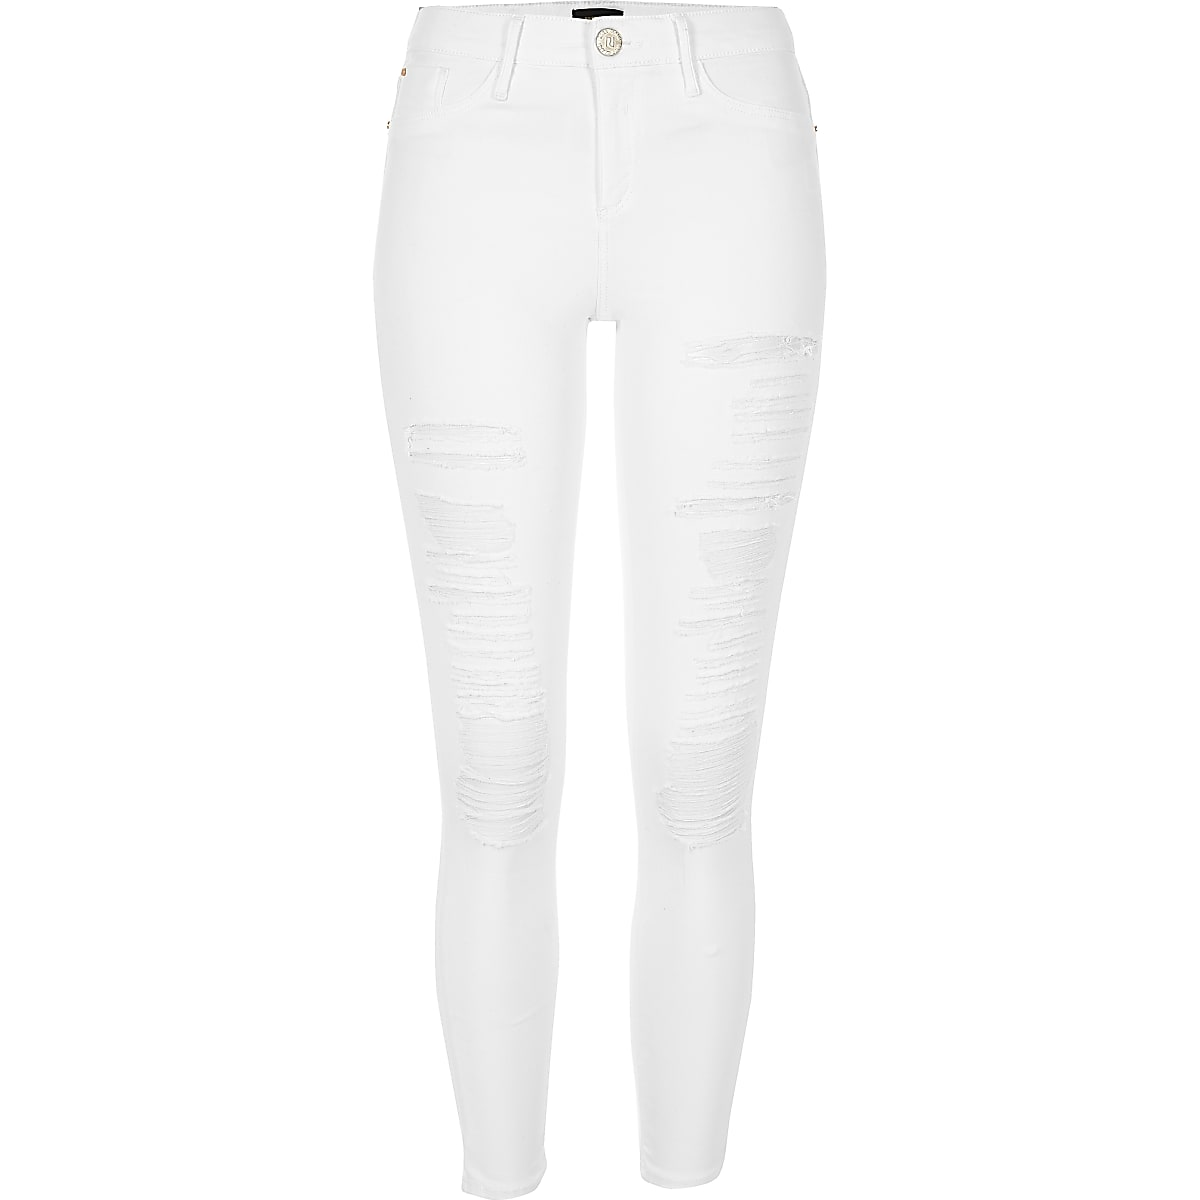 das beste Outlet-Store ungeschlagen x White ripped Molly jeggings